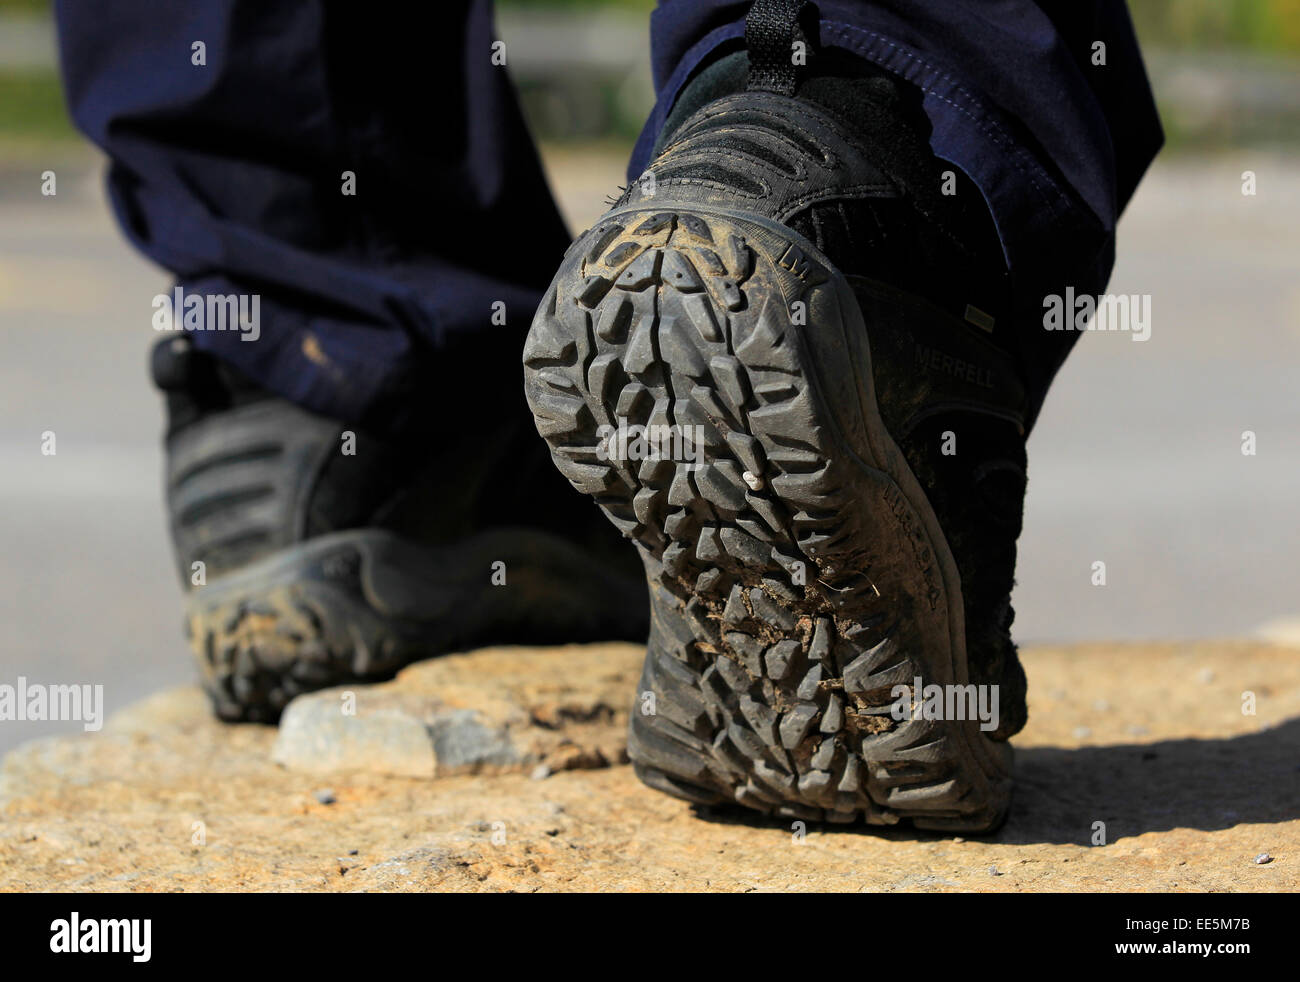 Keeping fit - healthy lifestyle - sole of muddy black walking boot close up - Stock Image